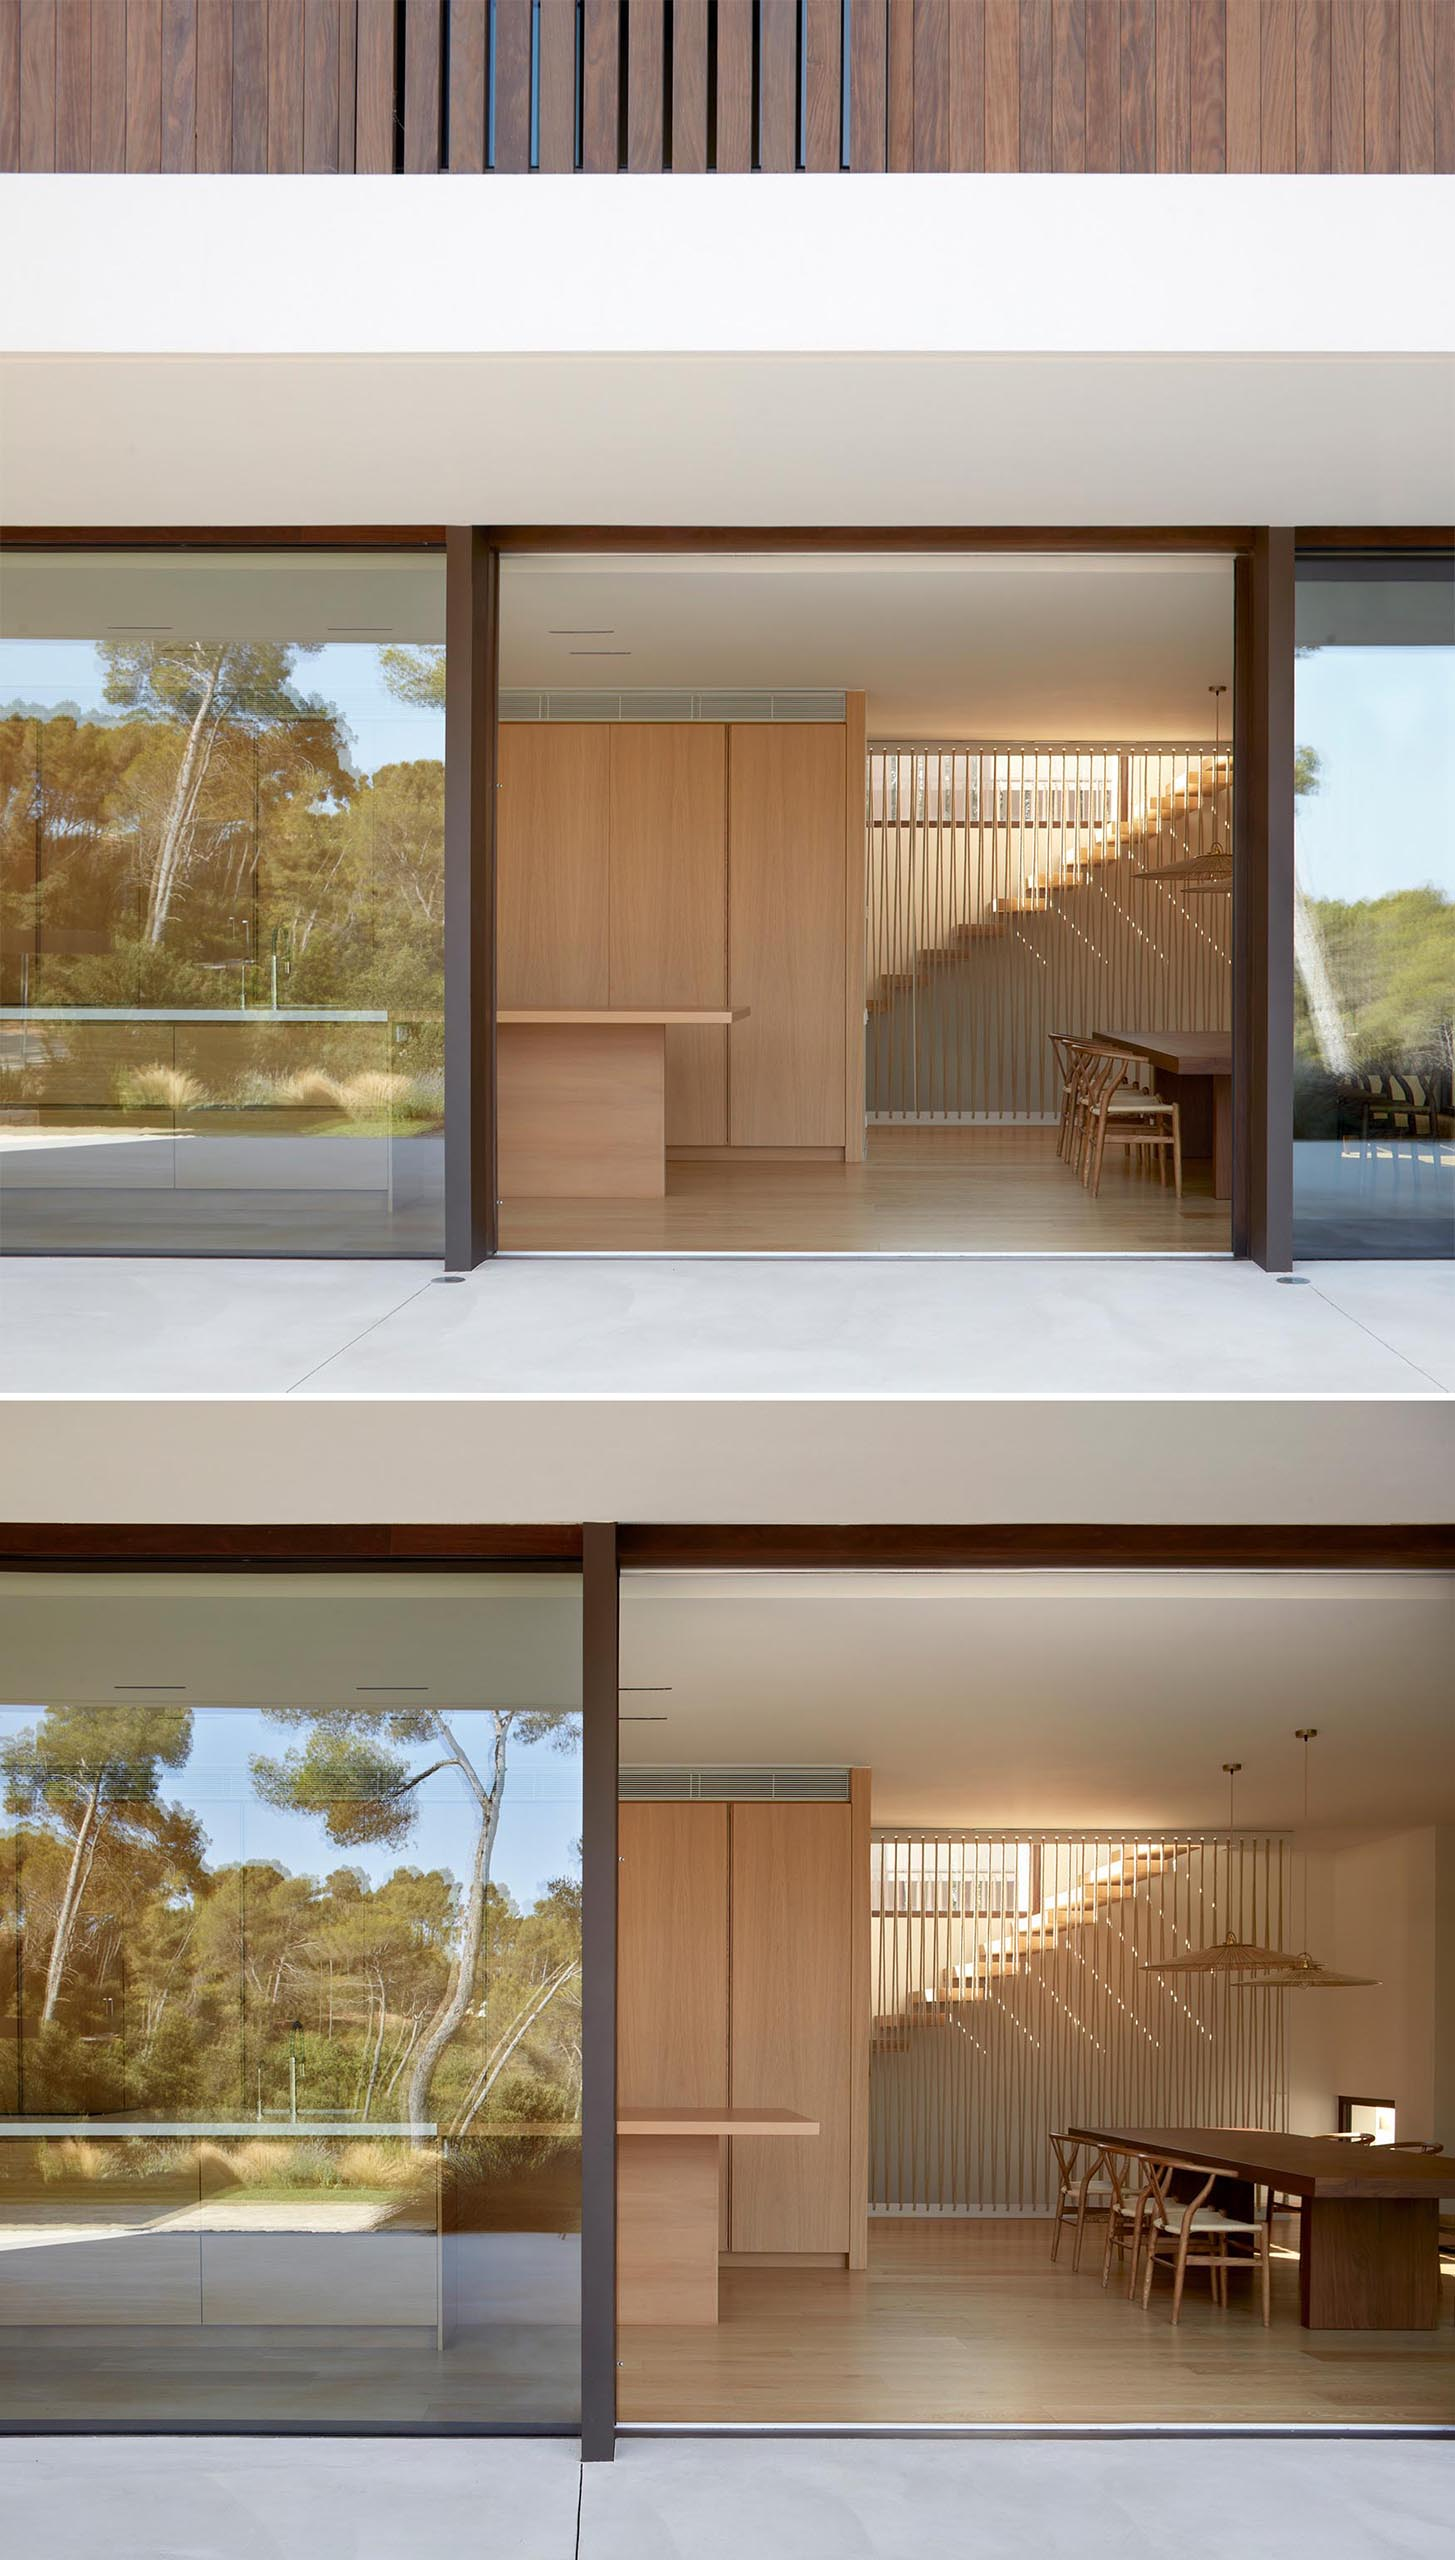 A modern house with a large sliding glass door that connects the interior and outdoor spaces.